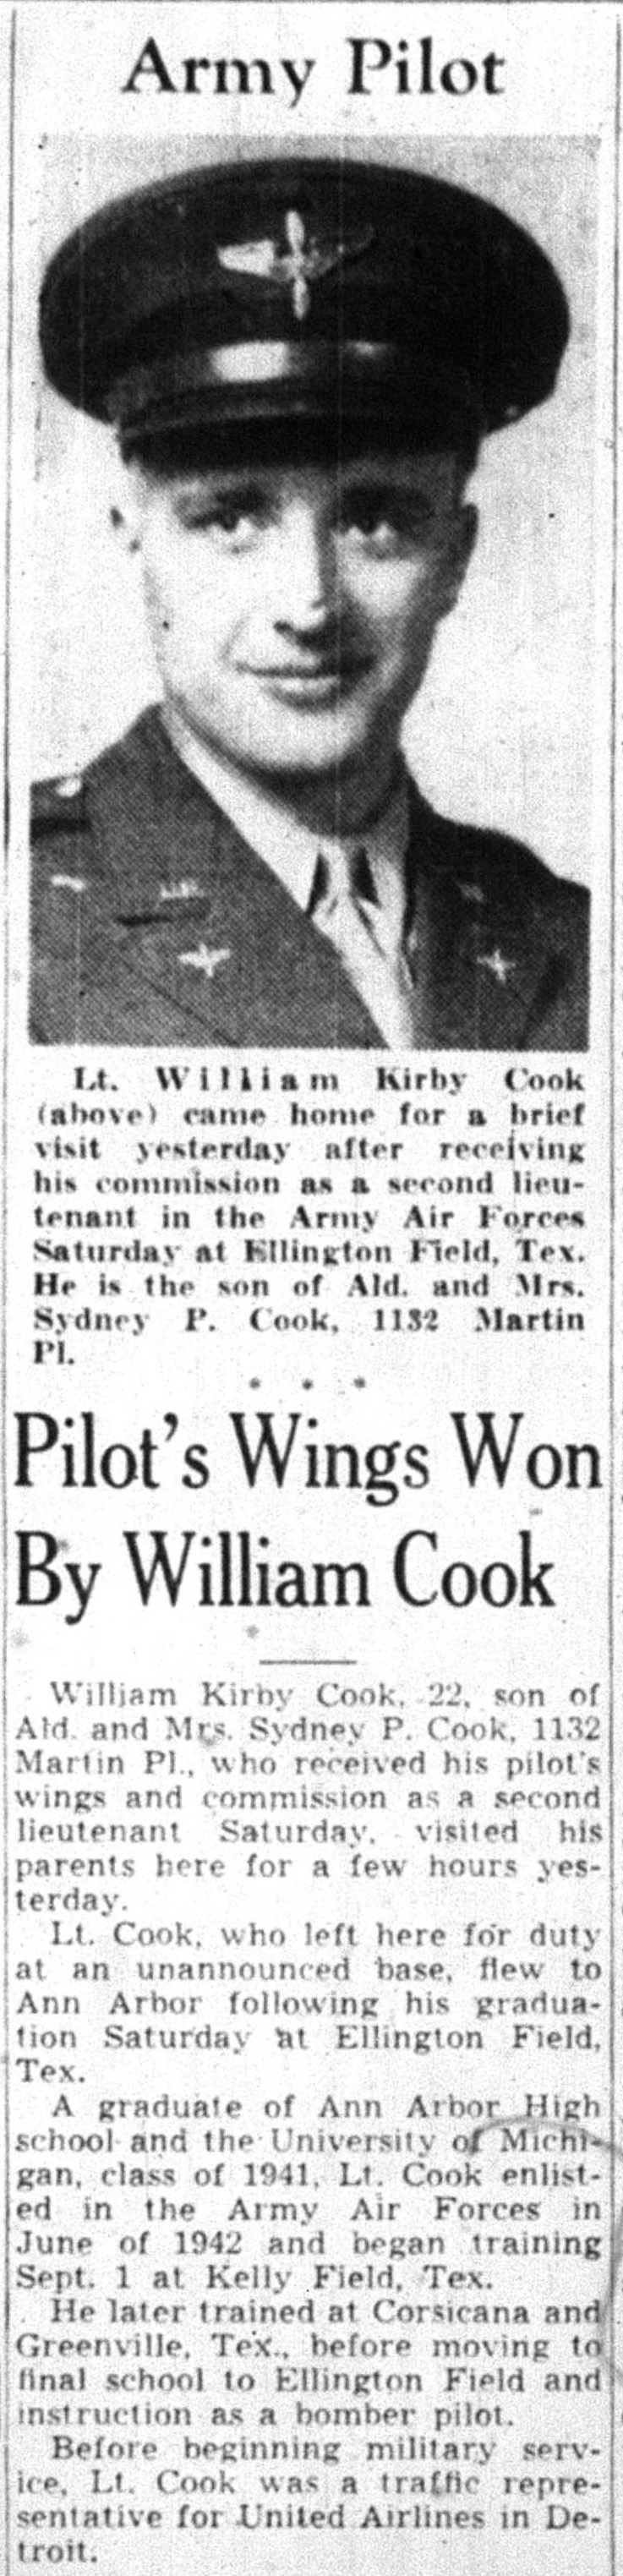 Pilot's Wings Won By William Cook image